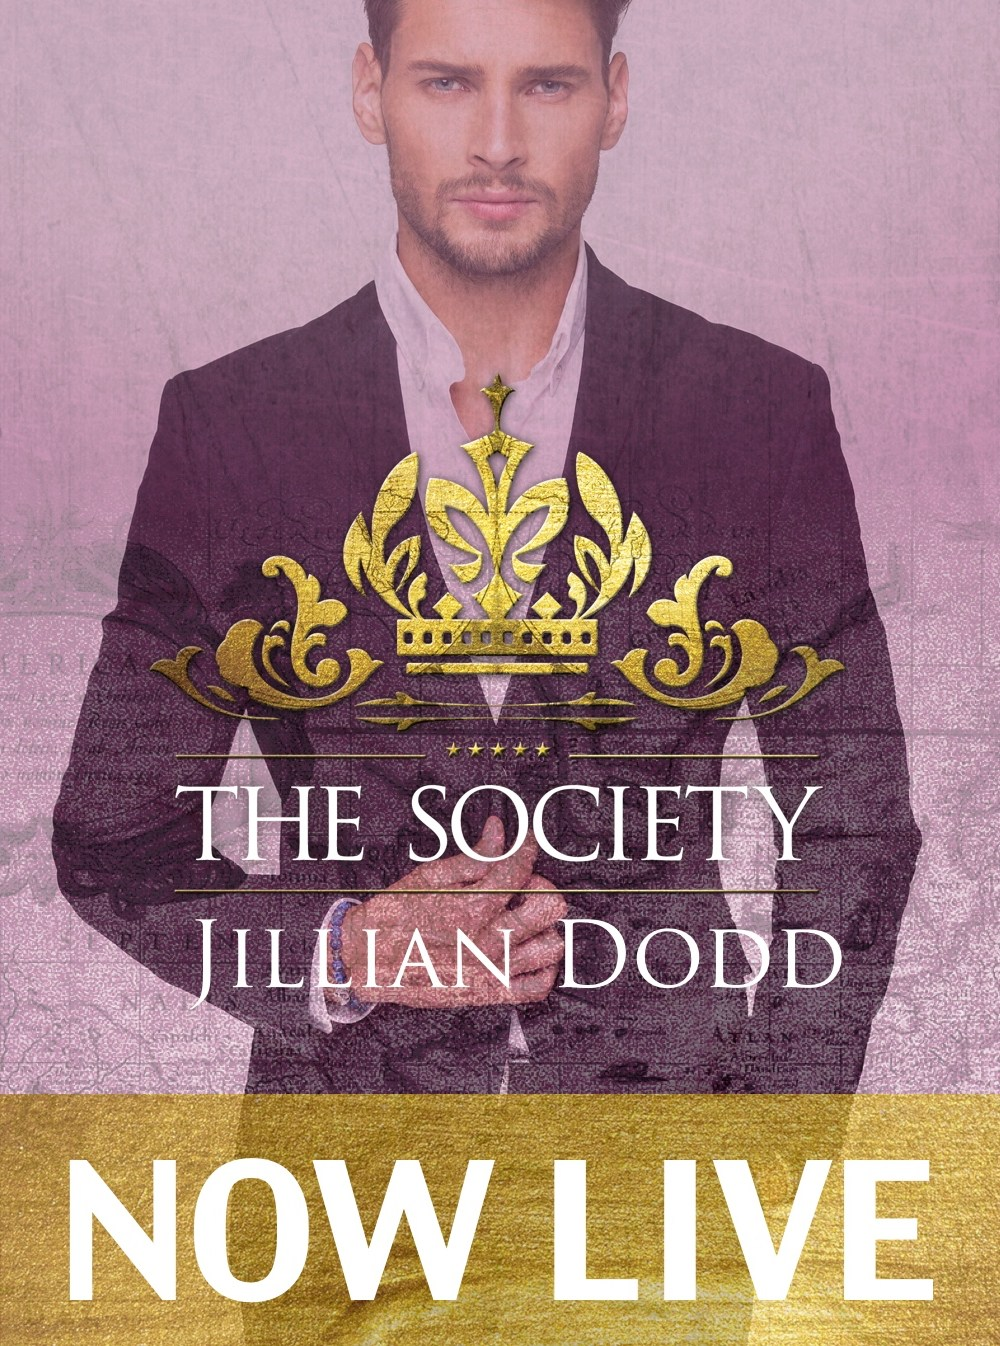 THE SOCIETY (Spy Girl #3) is LIVE!